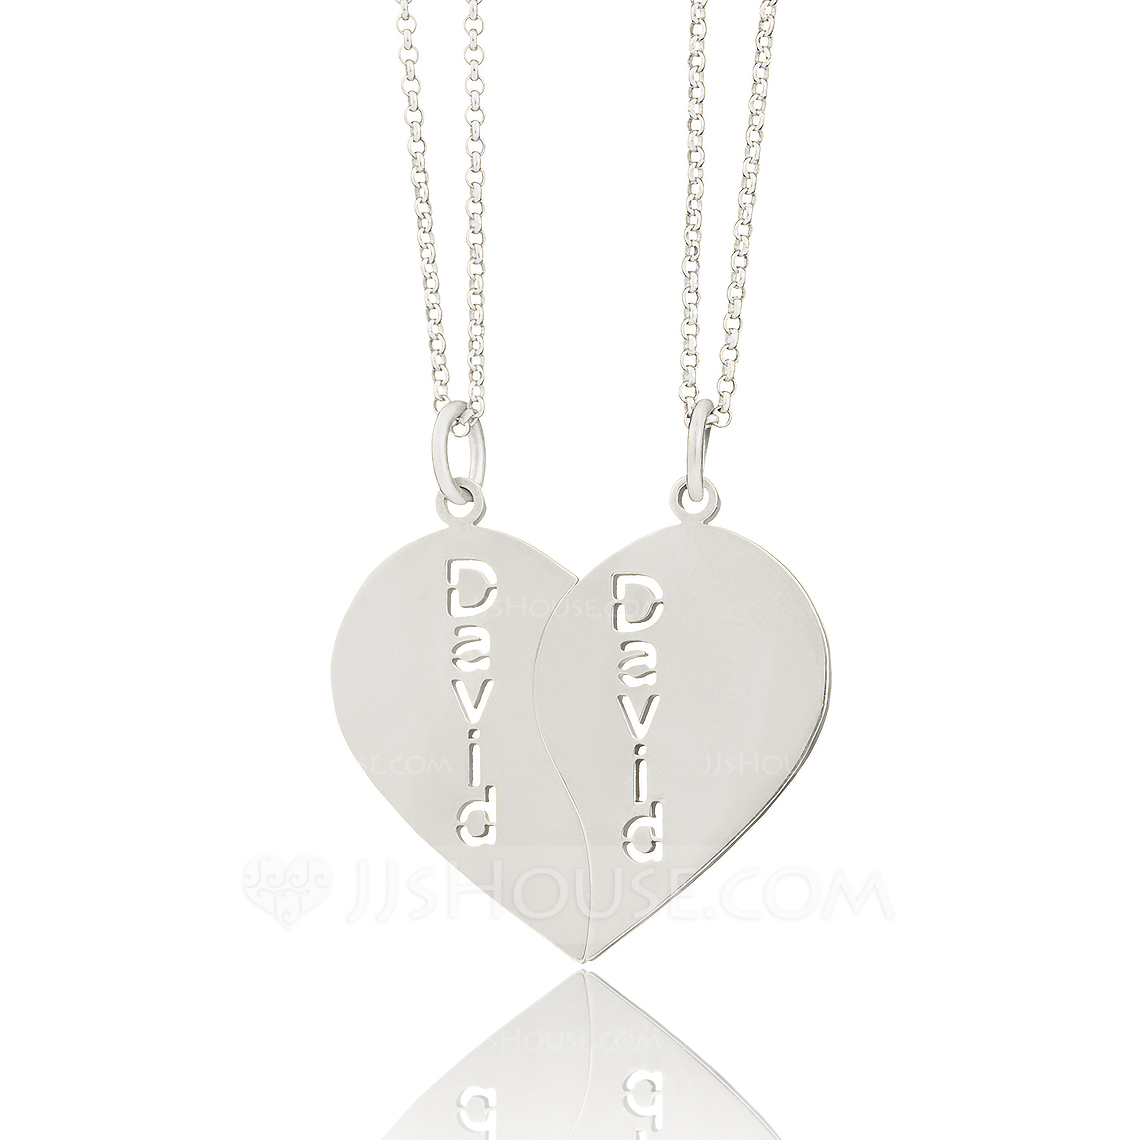 Custom Sterling Silver Heart Engraving/Engraved Couple Two Heart Necklace Engraved Necklace (Set of 2) - Christmas Gifts